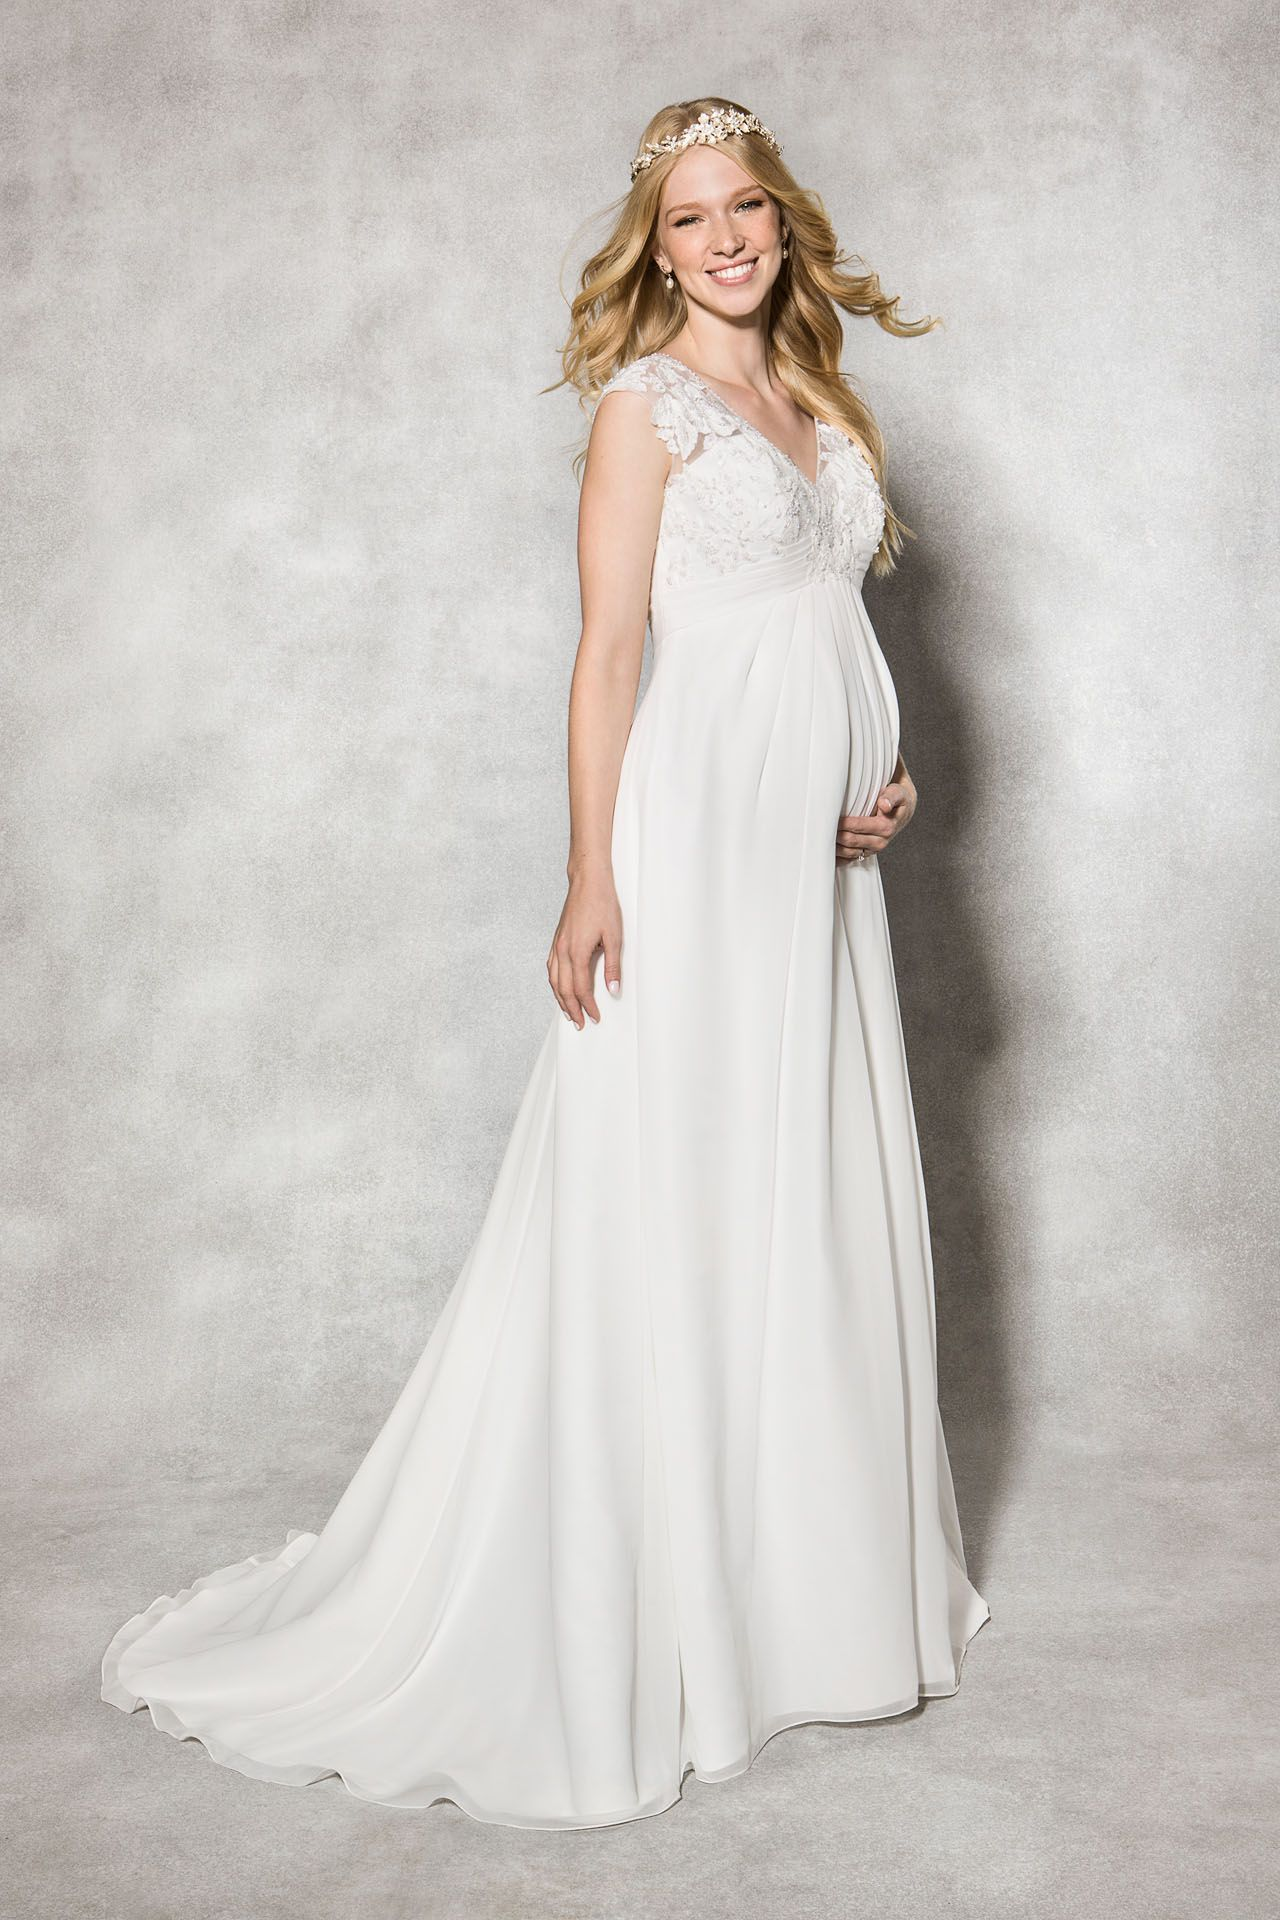 The beautiful heidi hudsons maternity gown alanis we love the beautiful heidi hudsons maternity gown alanis we love this empire line ombrellifo Image collections